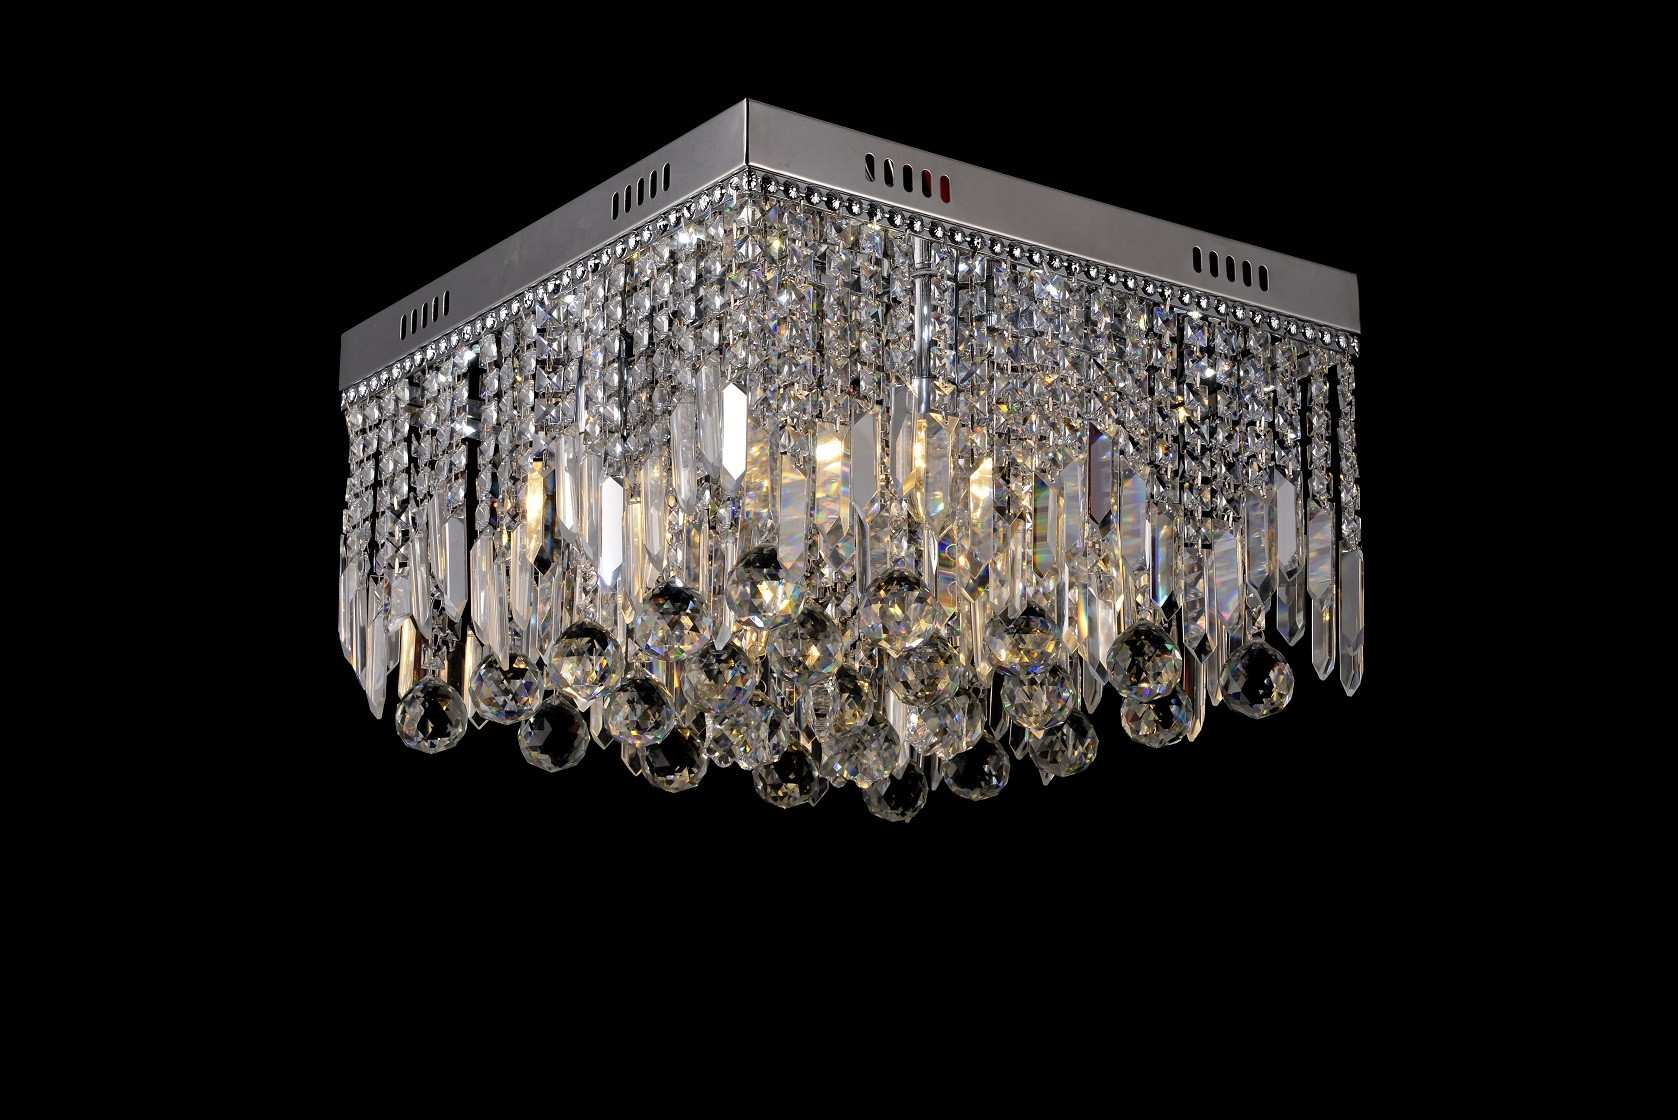 Square Led K9 Crystal Chrome Chandelier Day White Small Or Large Regarding Crystal Chrome Chandelier (View 8 of 15)